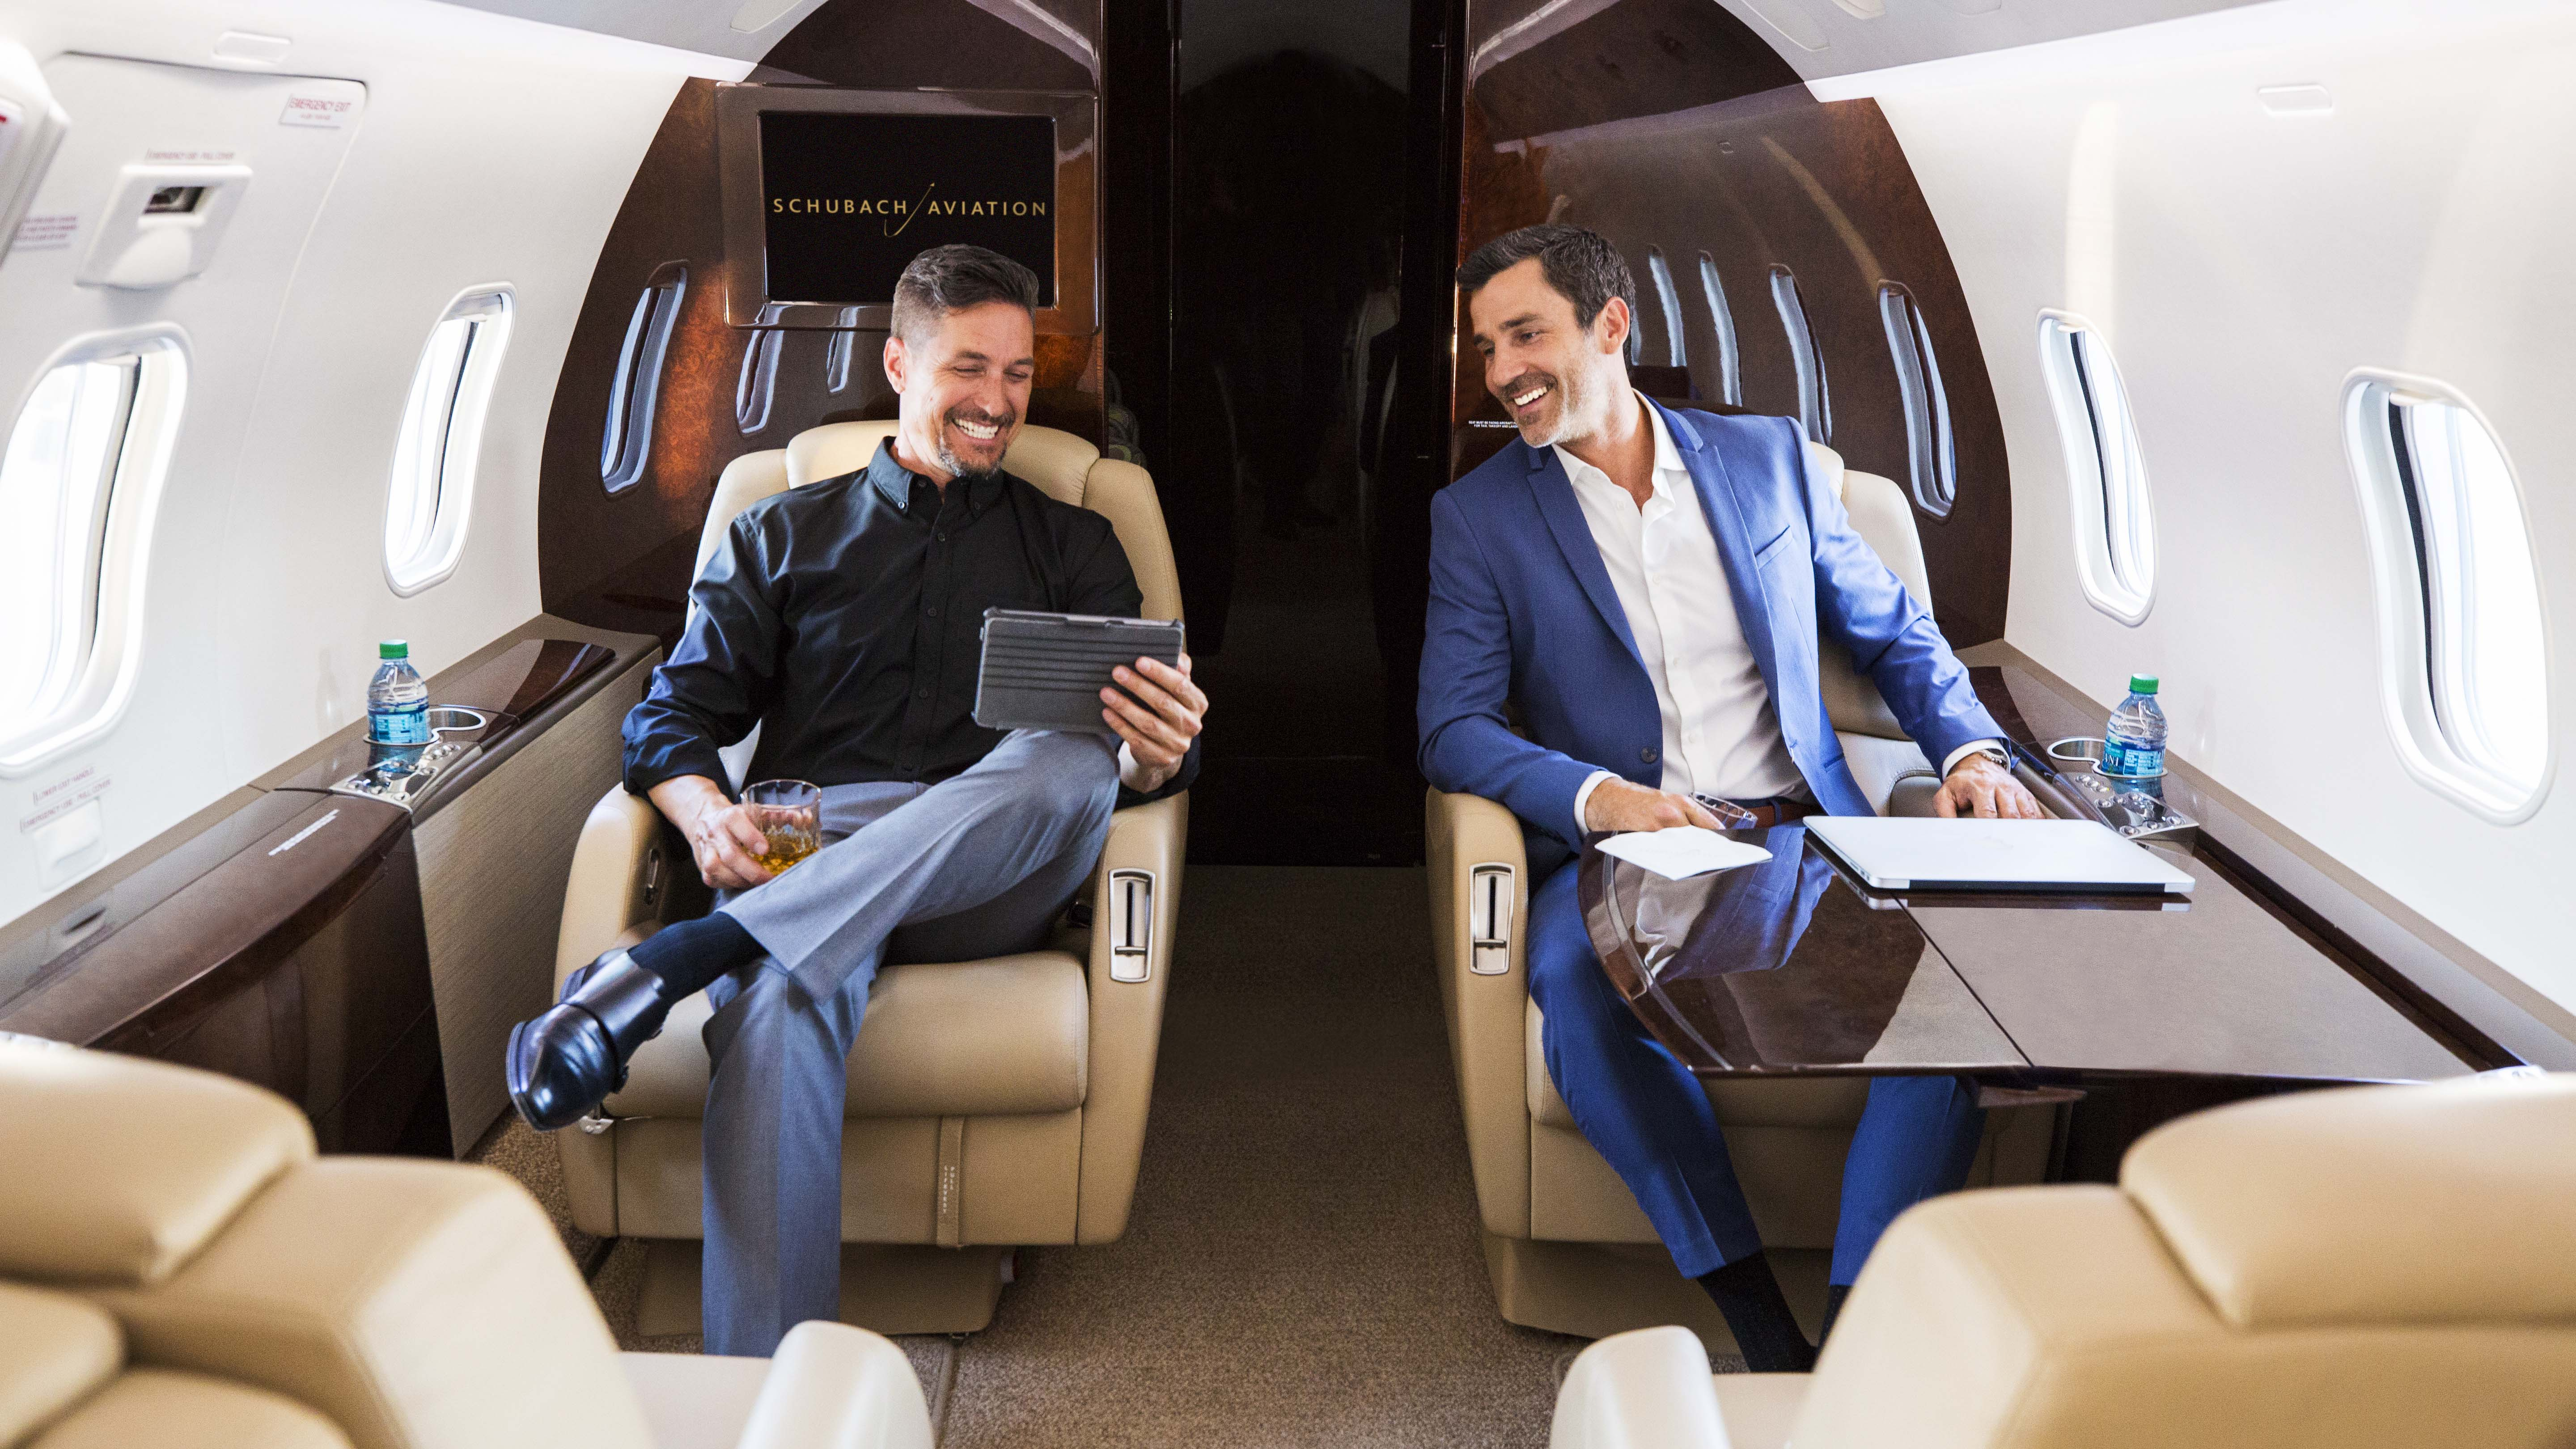 Schubach Aviation private travel elevated excursions